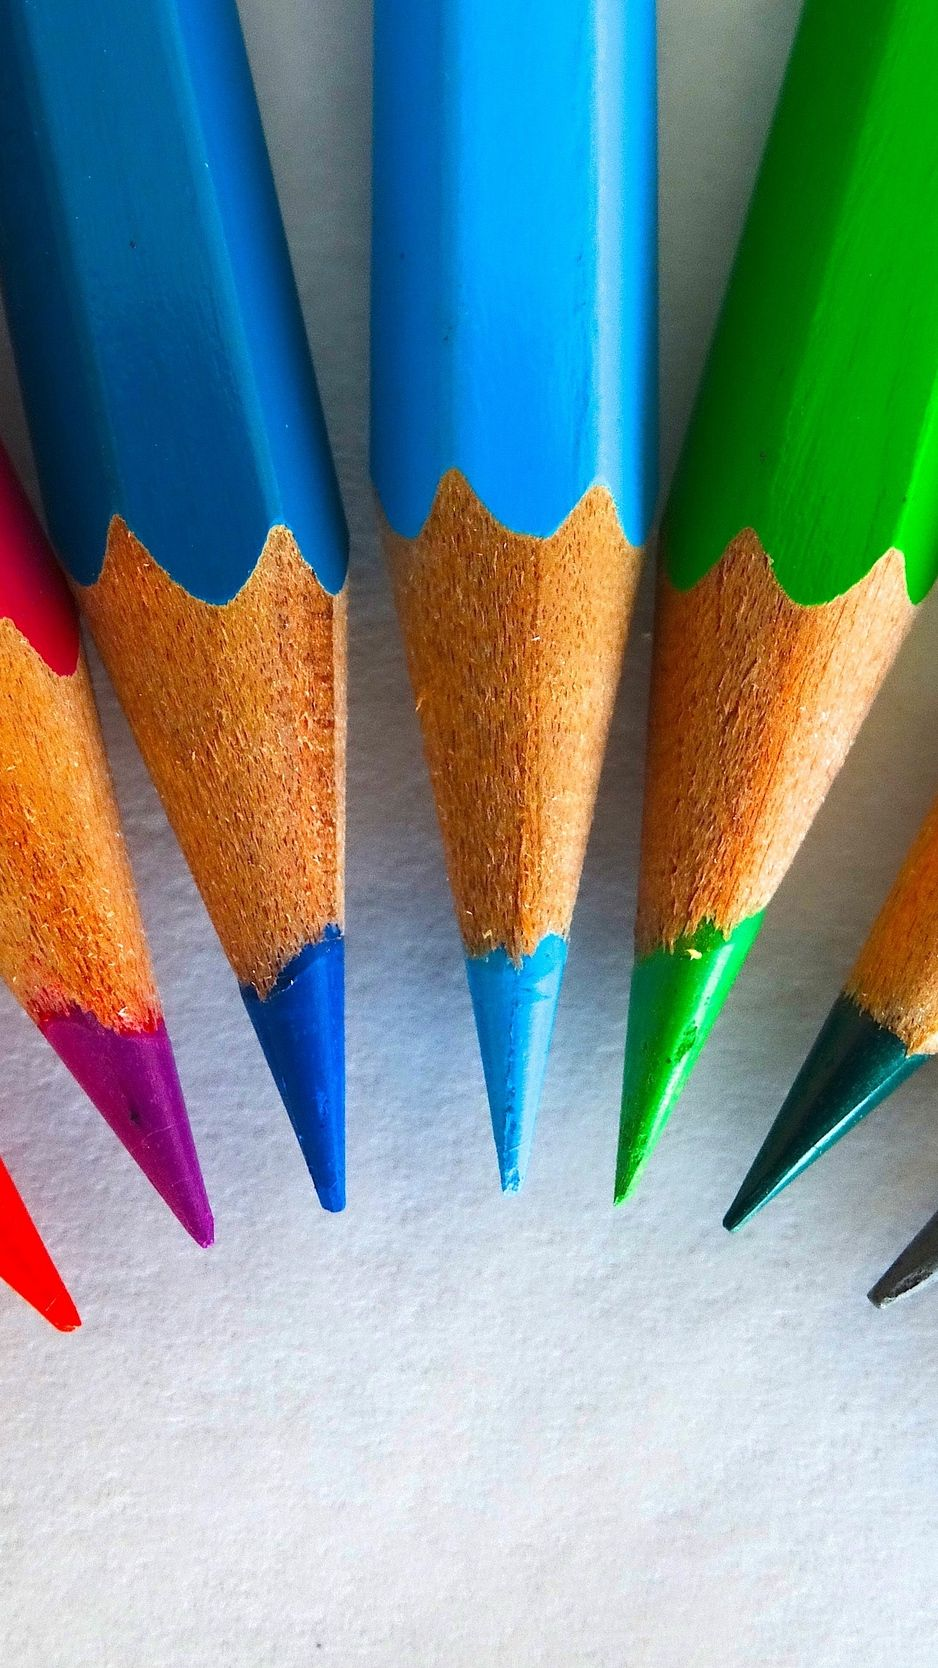 938x1668 Download wallpaper 938x1668 colored pencils, sharpened ...